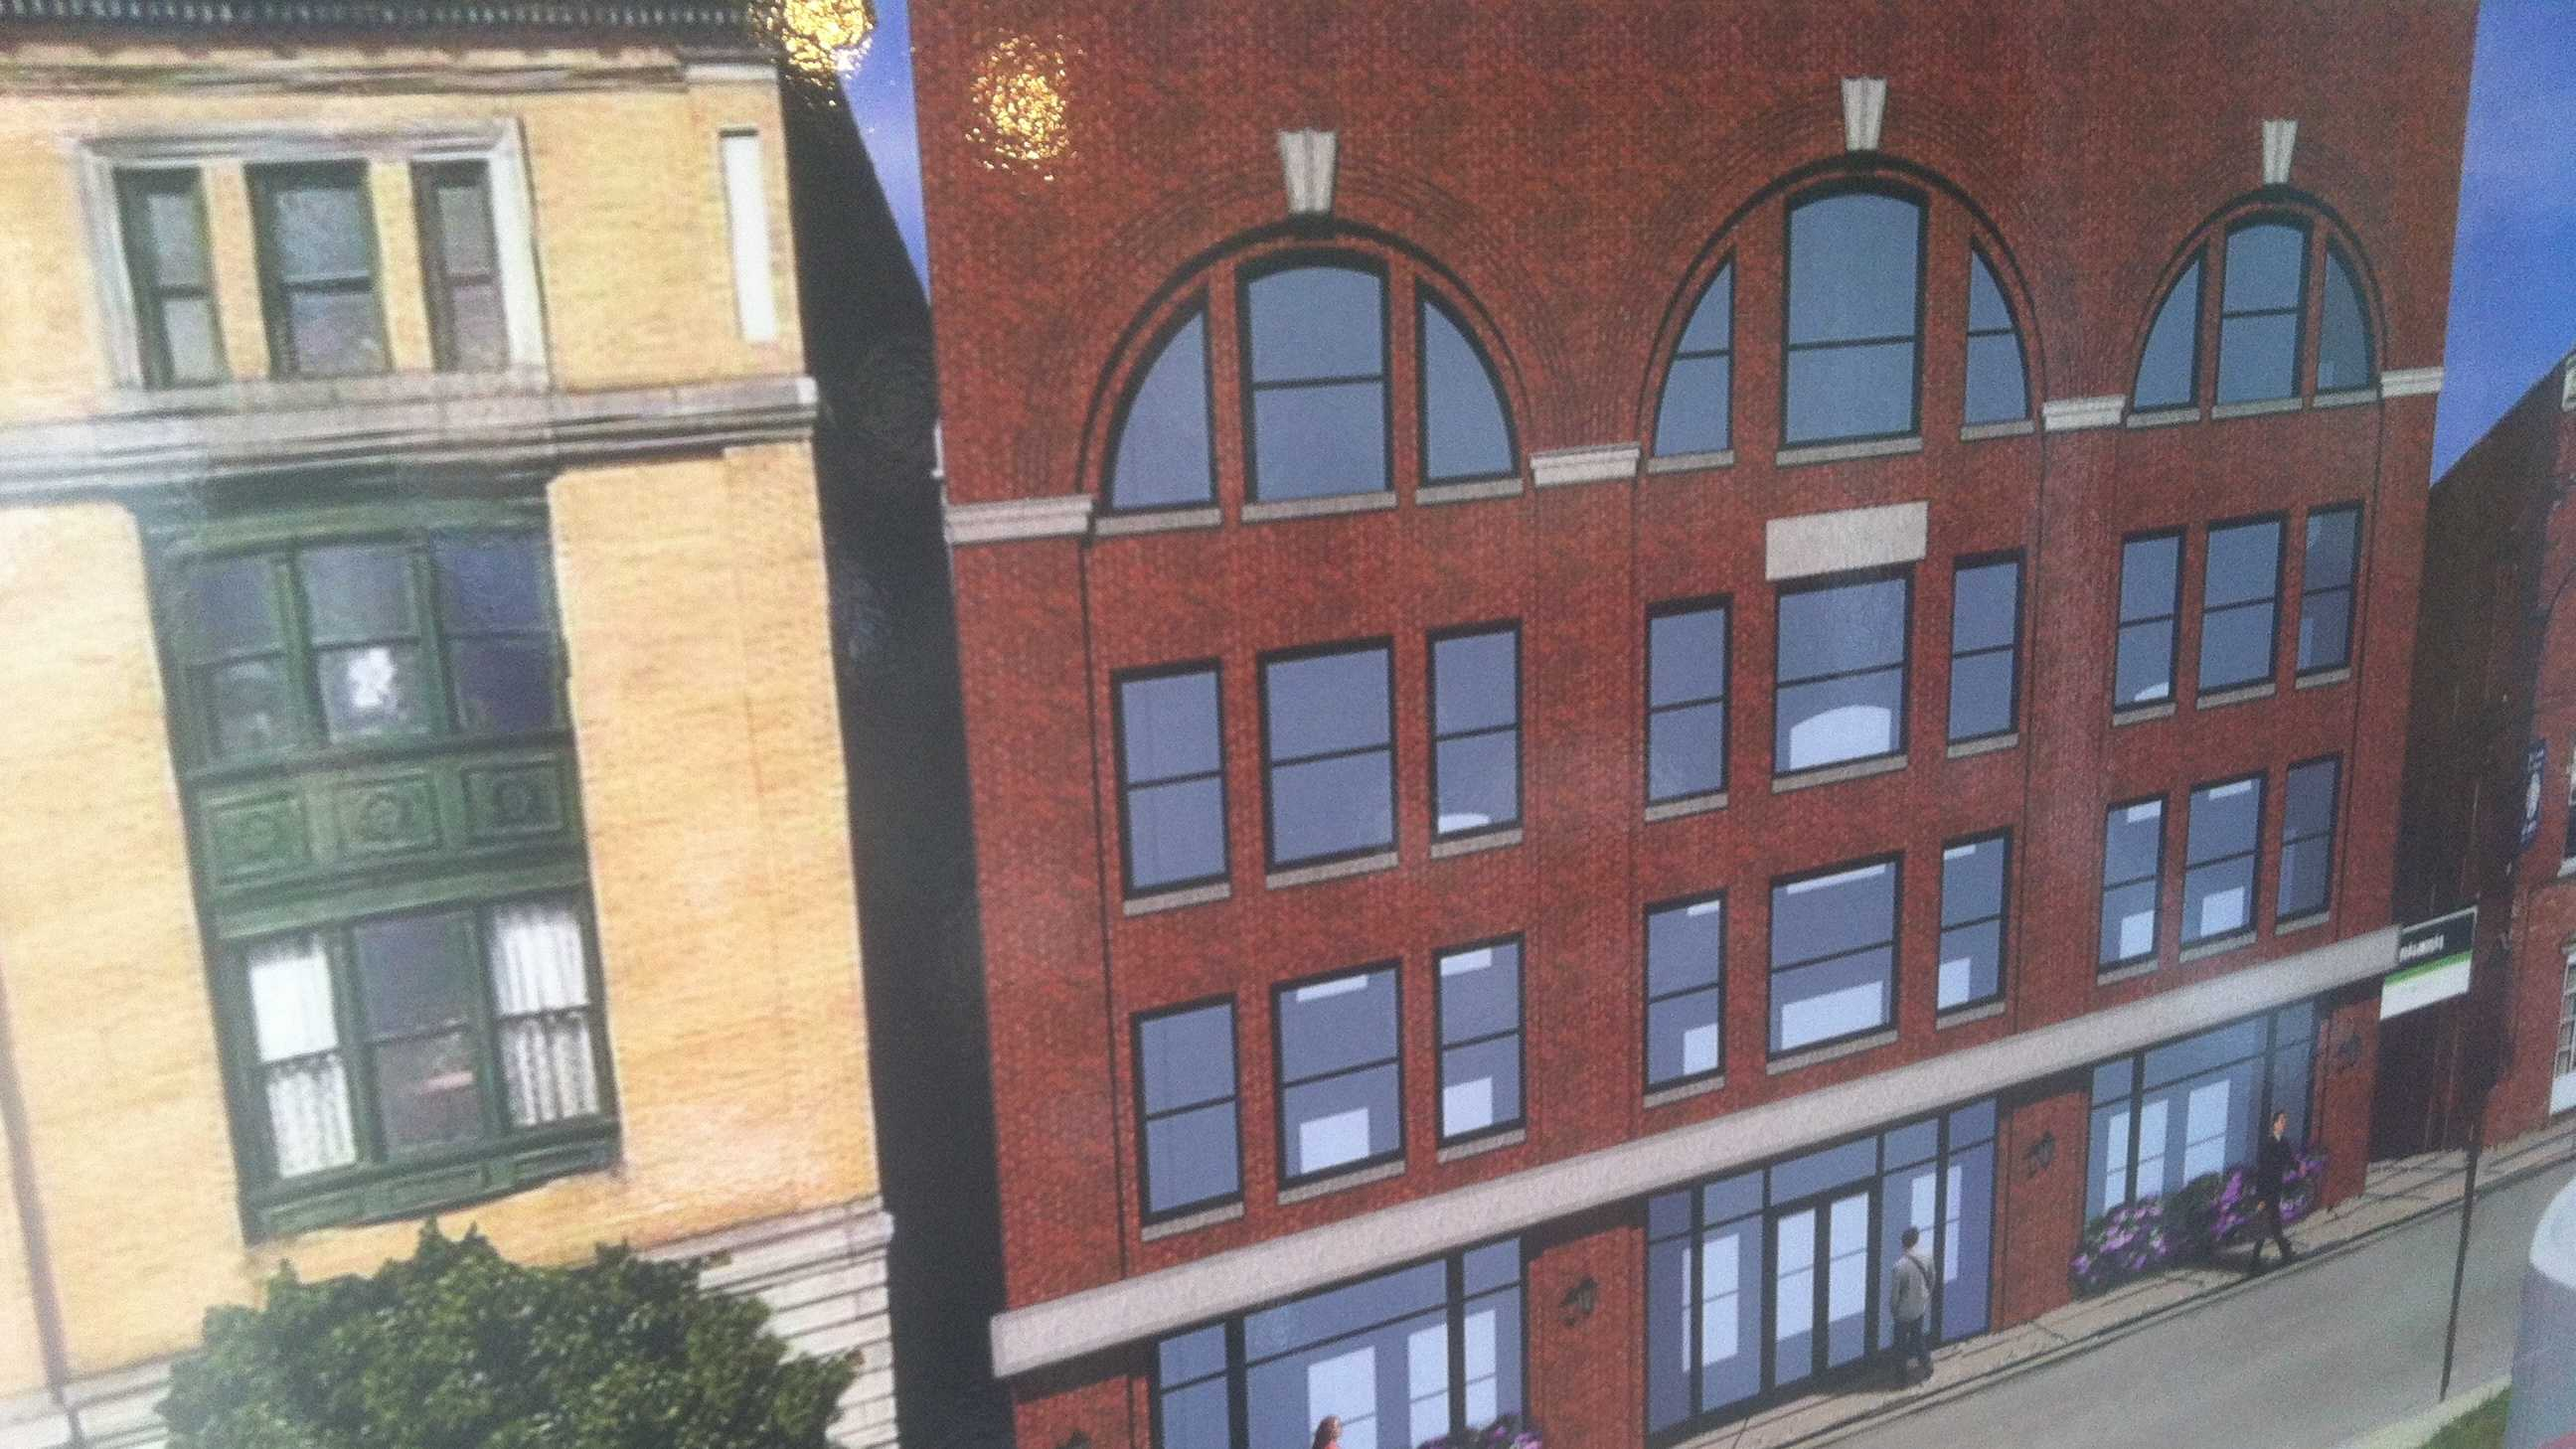 An architect's rendering of the facade of the Blanchard Block in downtown Barre which is expected to see new life as part of a wave of rehabilitation to historic commercial buildings statewide.